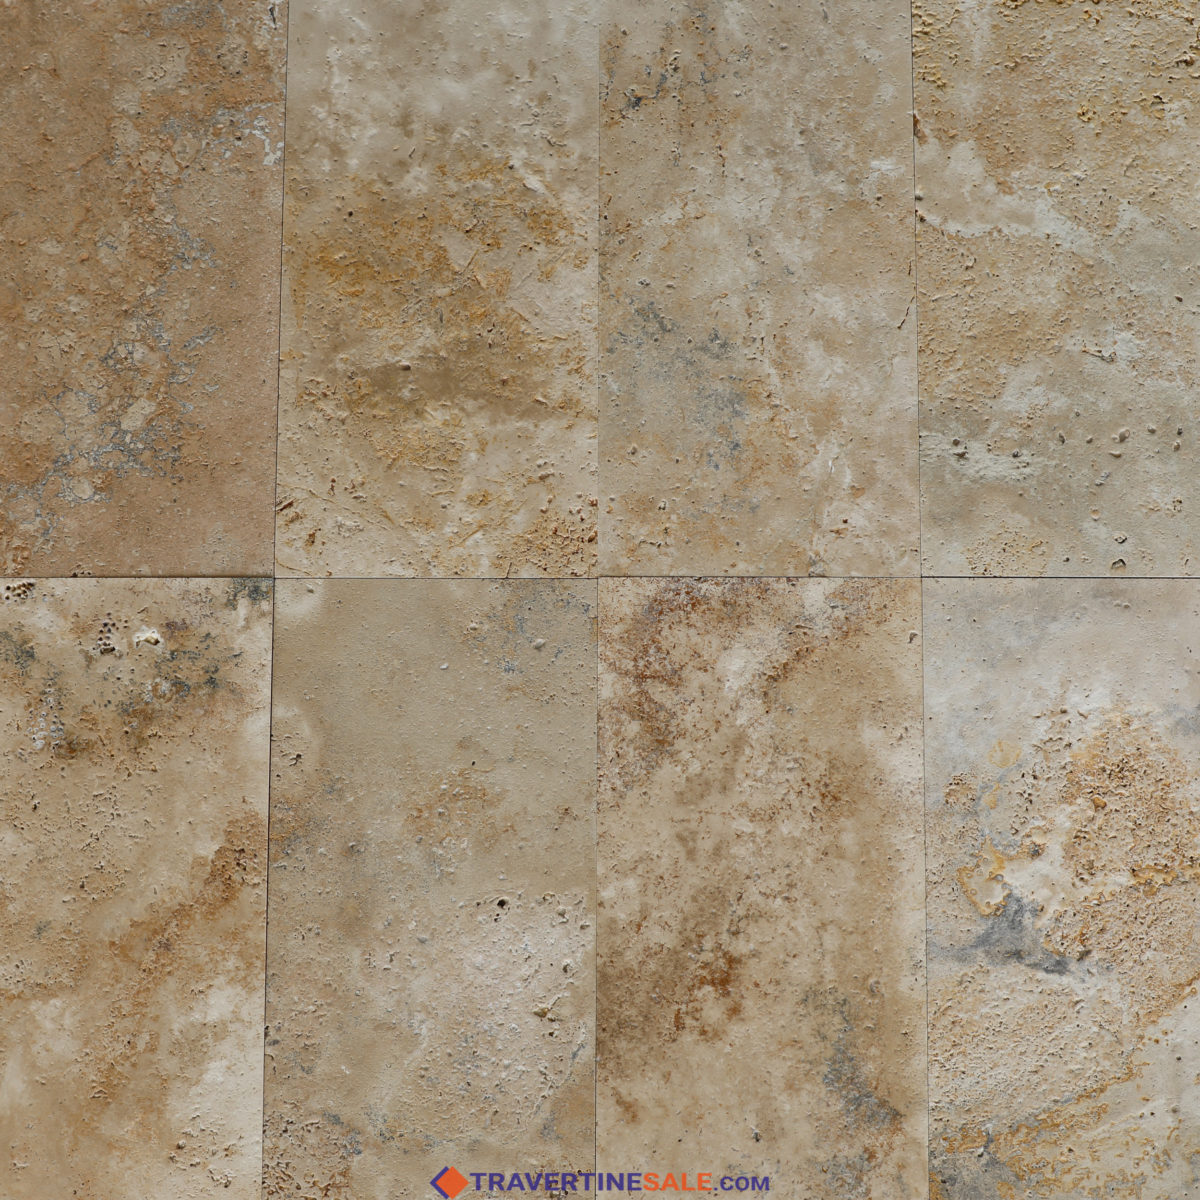 country classic travertine tiles with wet rusty beige look